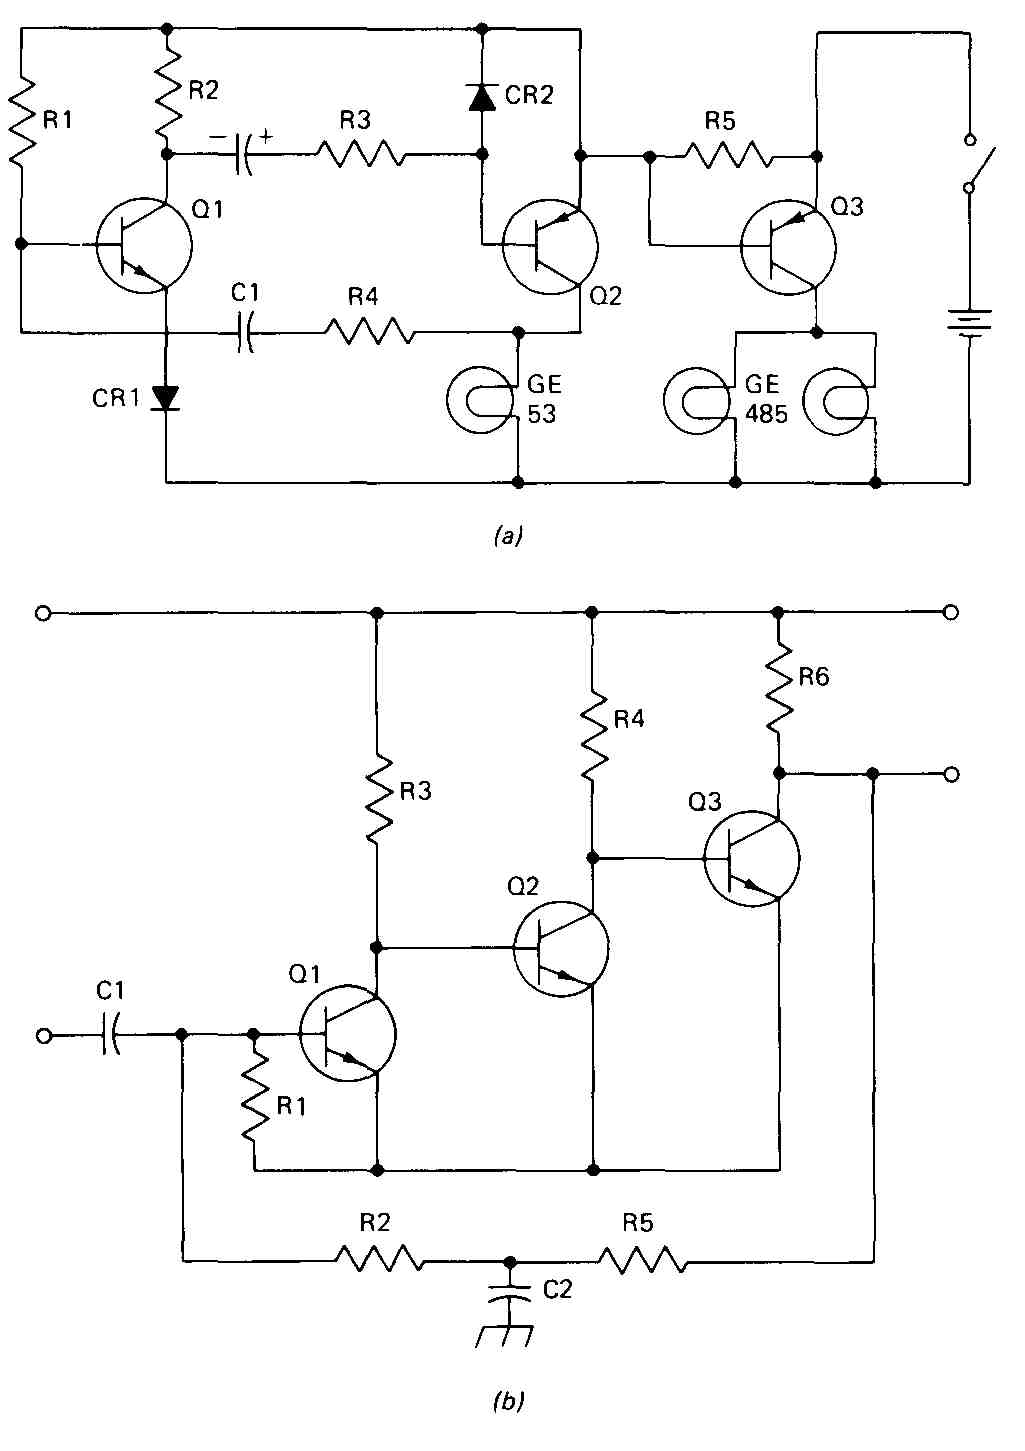 Electrical and electronic schematic Diagrams (part 1)